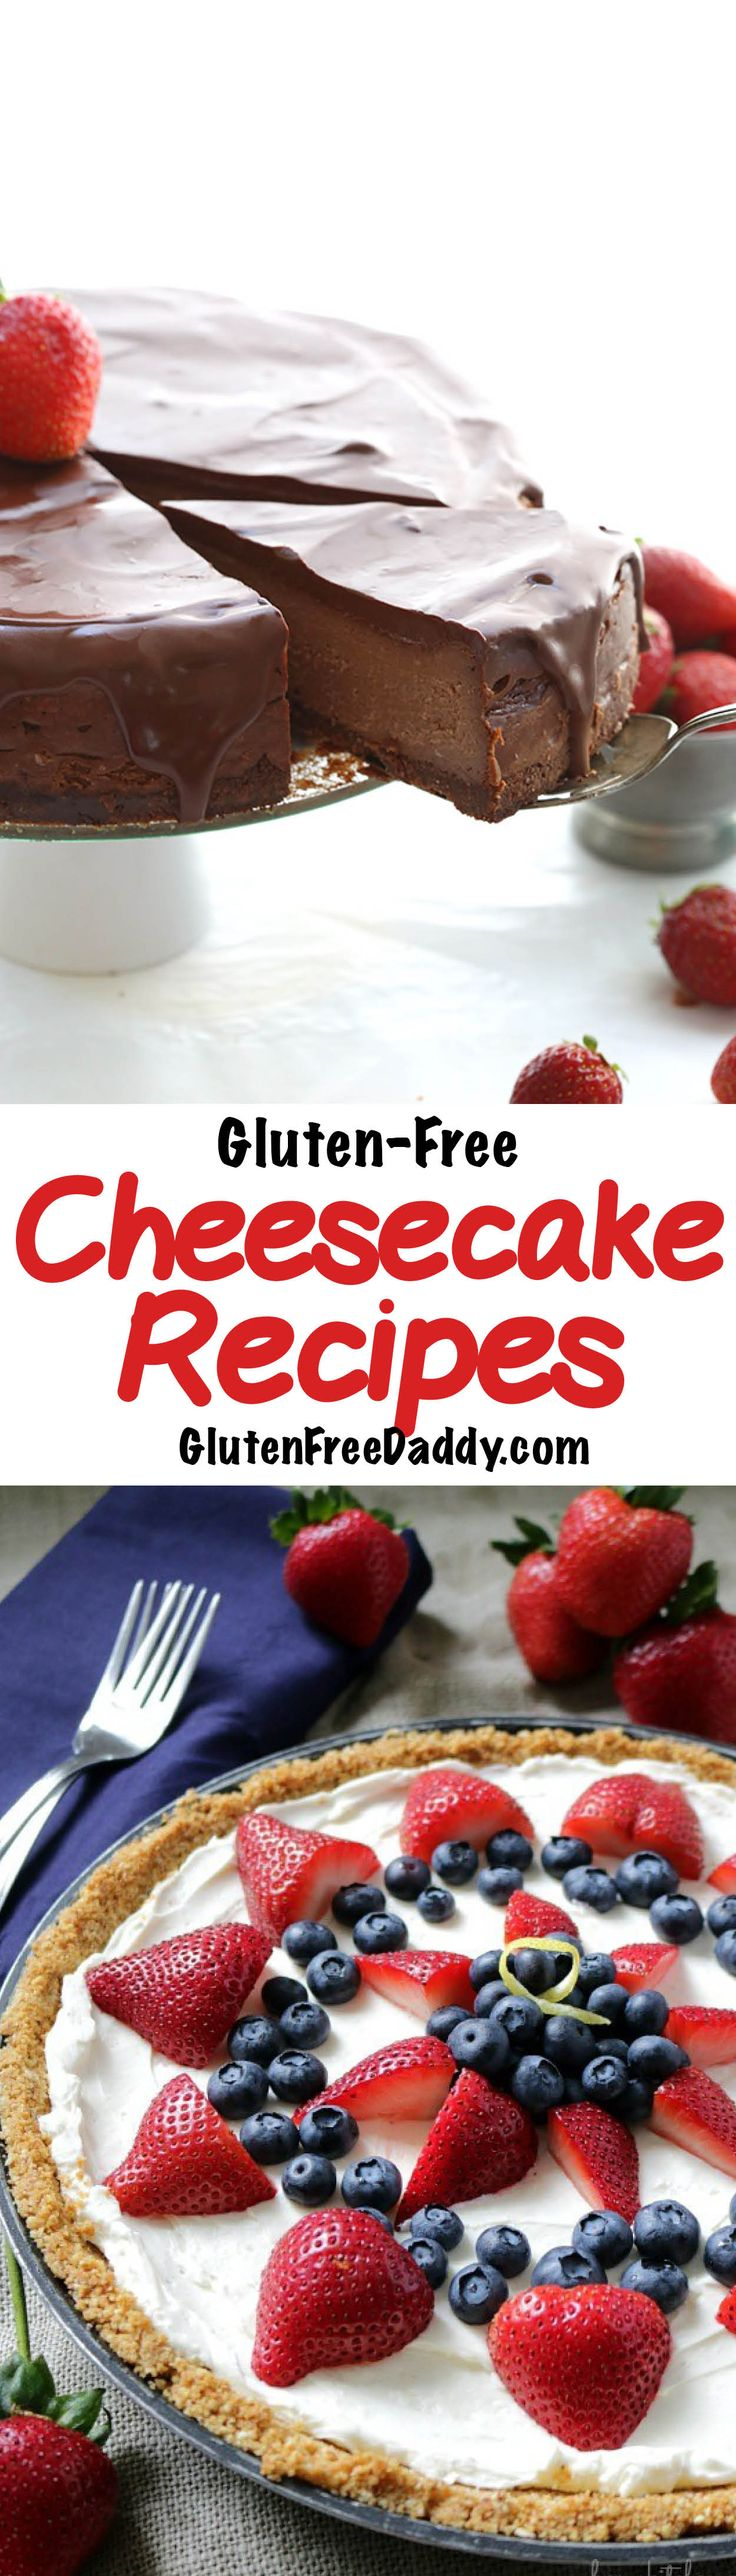 Cheesecake is one of my favorite desserts. Well, put it this way – I just love cream cheese – so that's why I love cheesecake. Now that I've gone gluten-free I've been trying to find gluten-free cheesecake recipes and it was a little harder than I thought it might be. The problem was that I found …